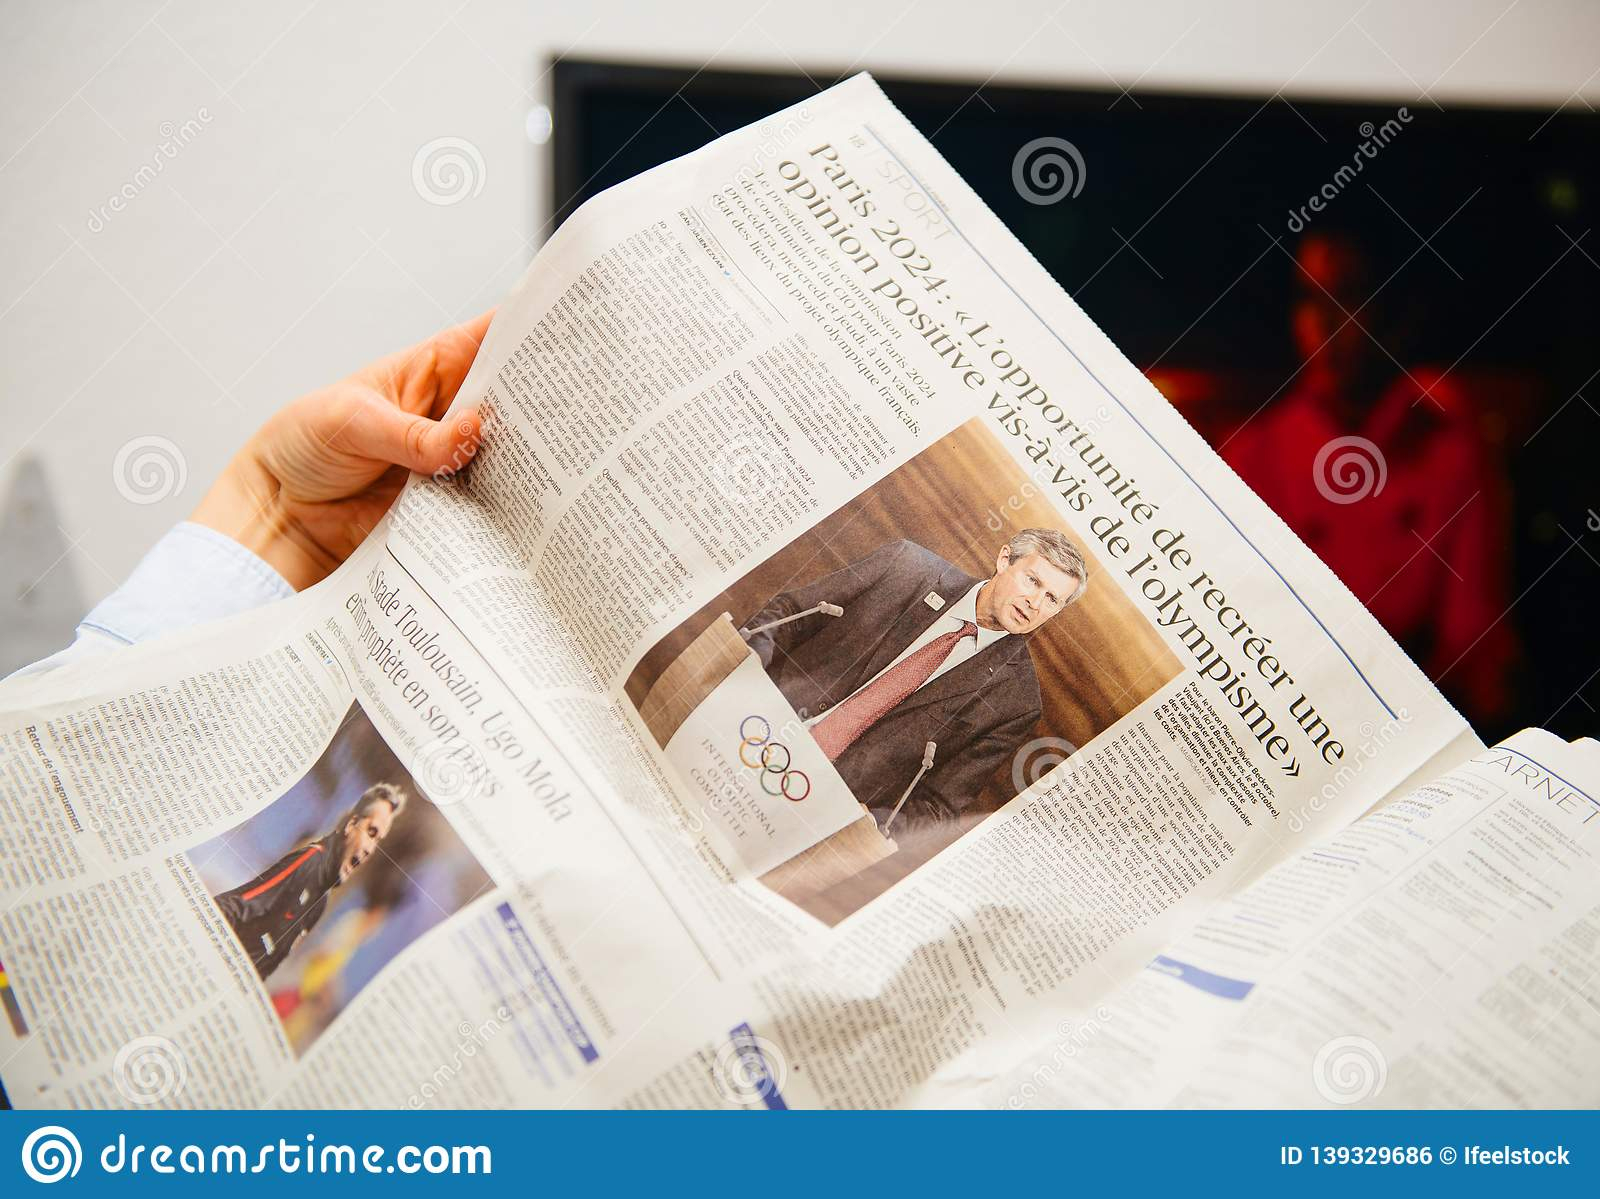 Woman Reading French Le Figaro Newspaper About Paris Olympic tout Jeu Villes France